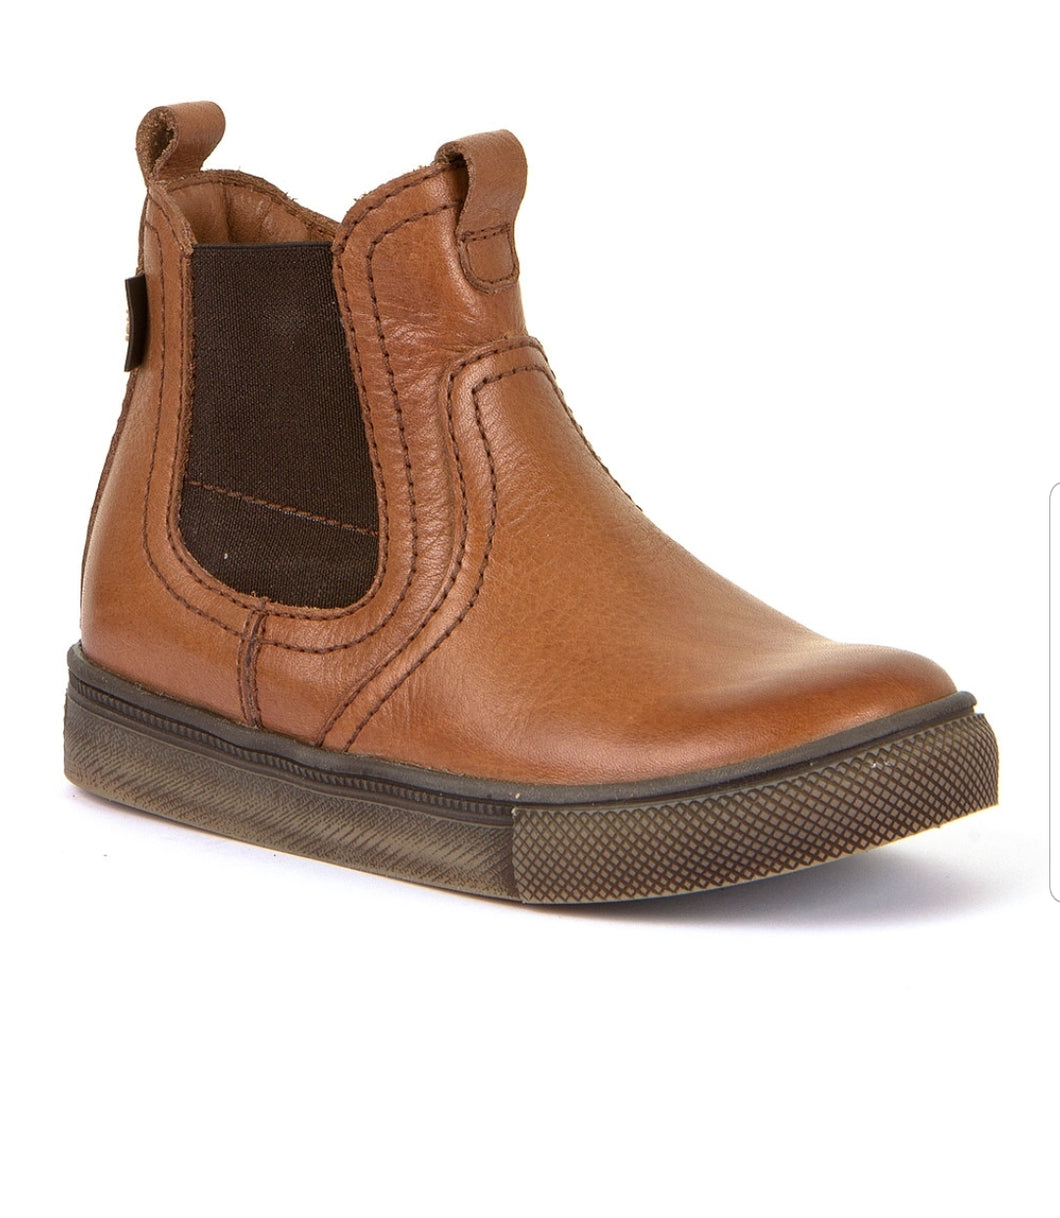 Froddo Cognac Waterproof Side Zipper Boot G3160113